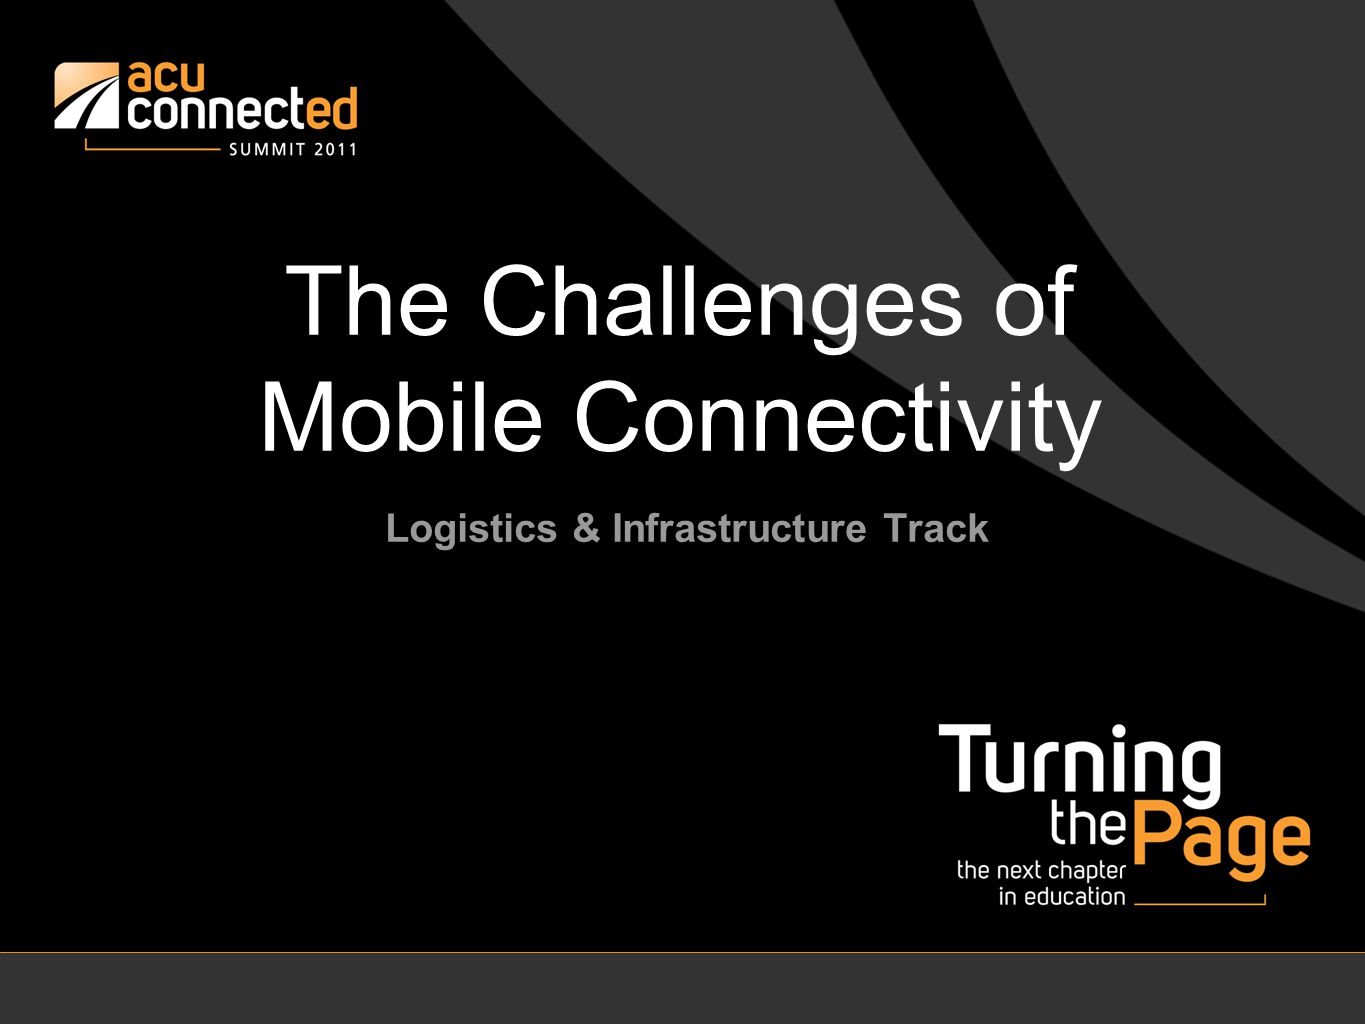 The Challenges of Mobile Connectivity Logistics & Infrastructure Track